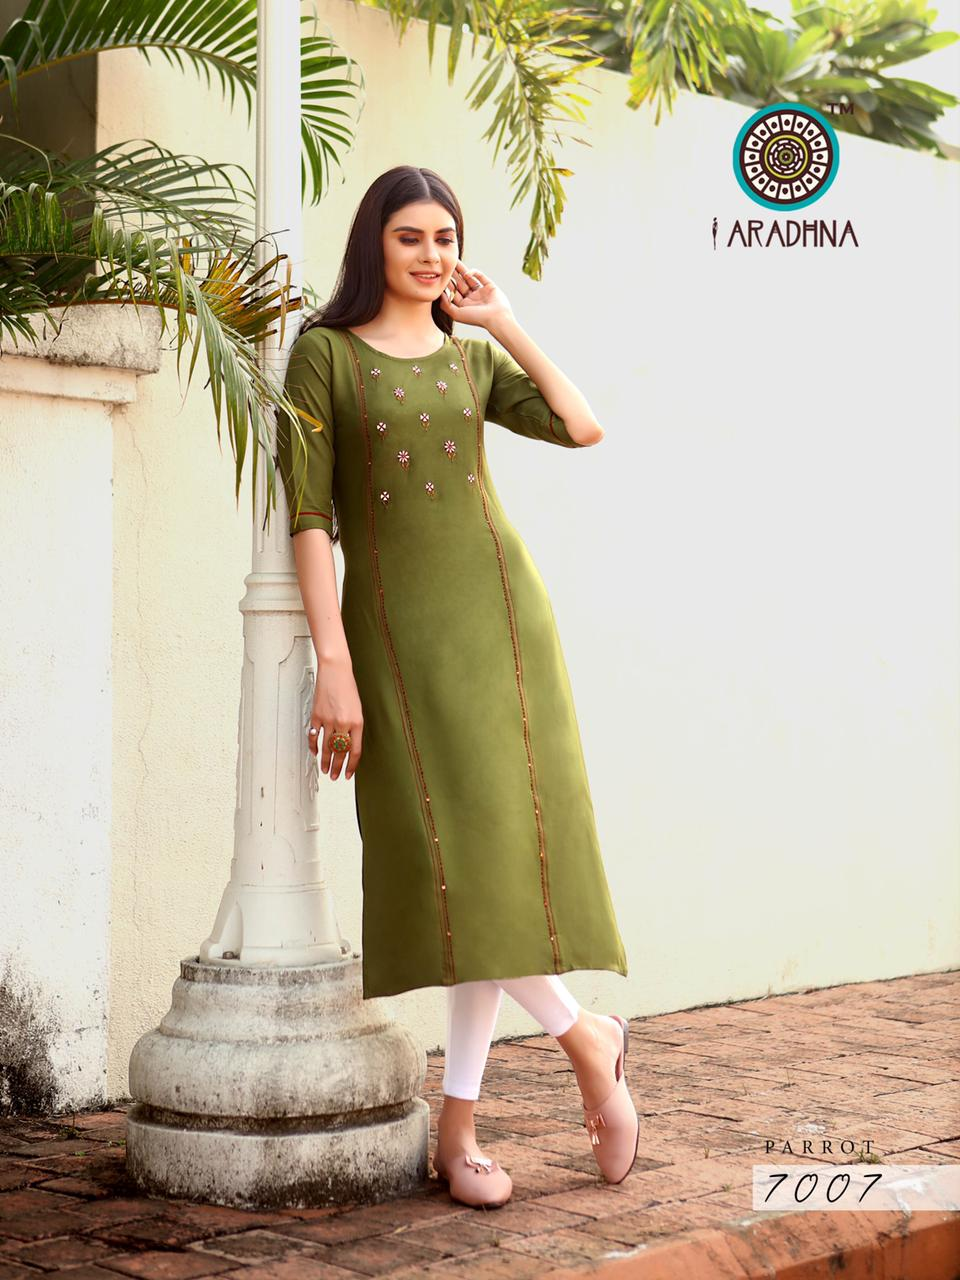 Aradhna Parrot Vol 7 Kurti Wholesale Catalog 11 Pcs 7 - Aradhna Parrot Vol 7 Kurti Wholesale Catalog 11 Pcs